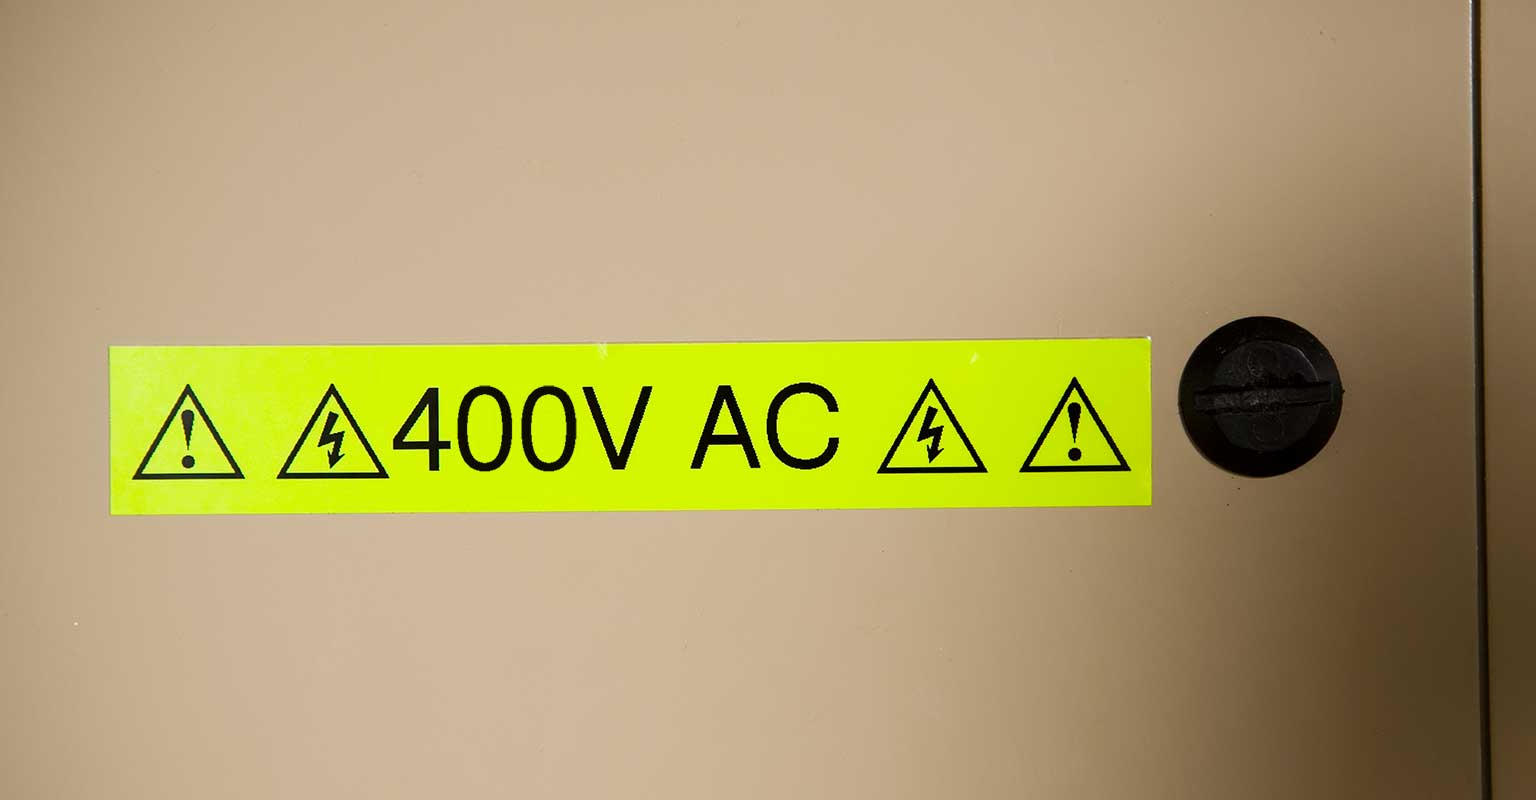 P-touch fluorescent TZe tape with voltage warning message